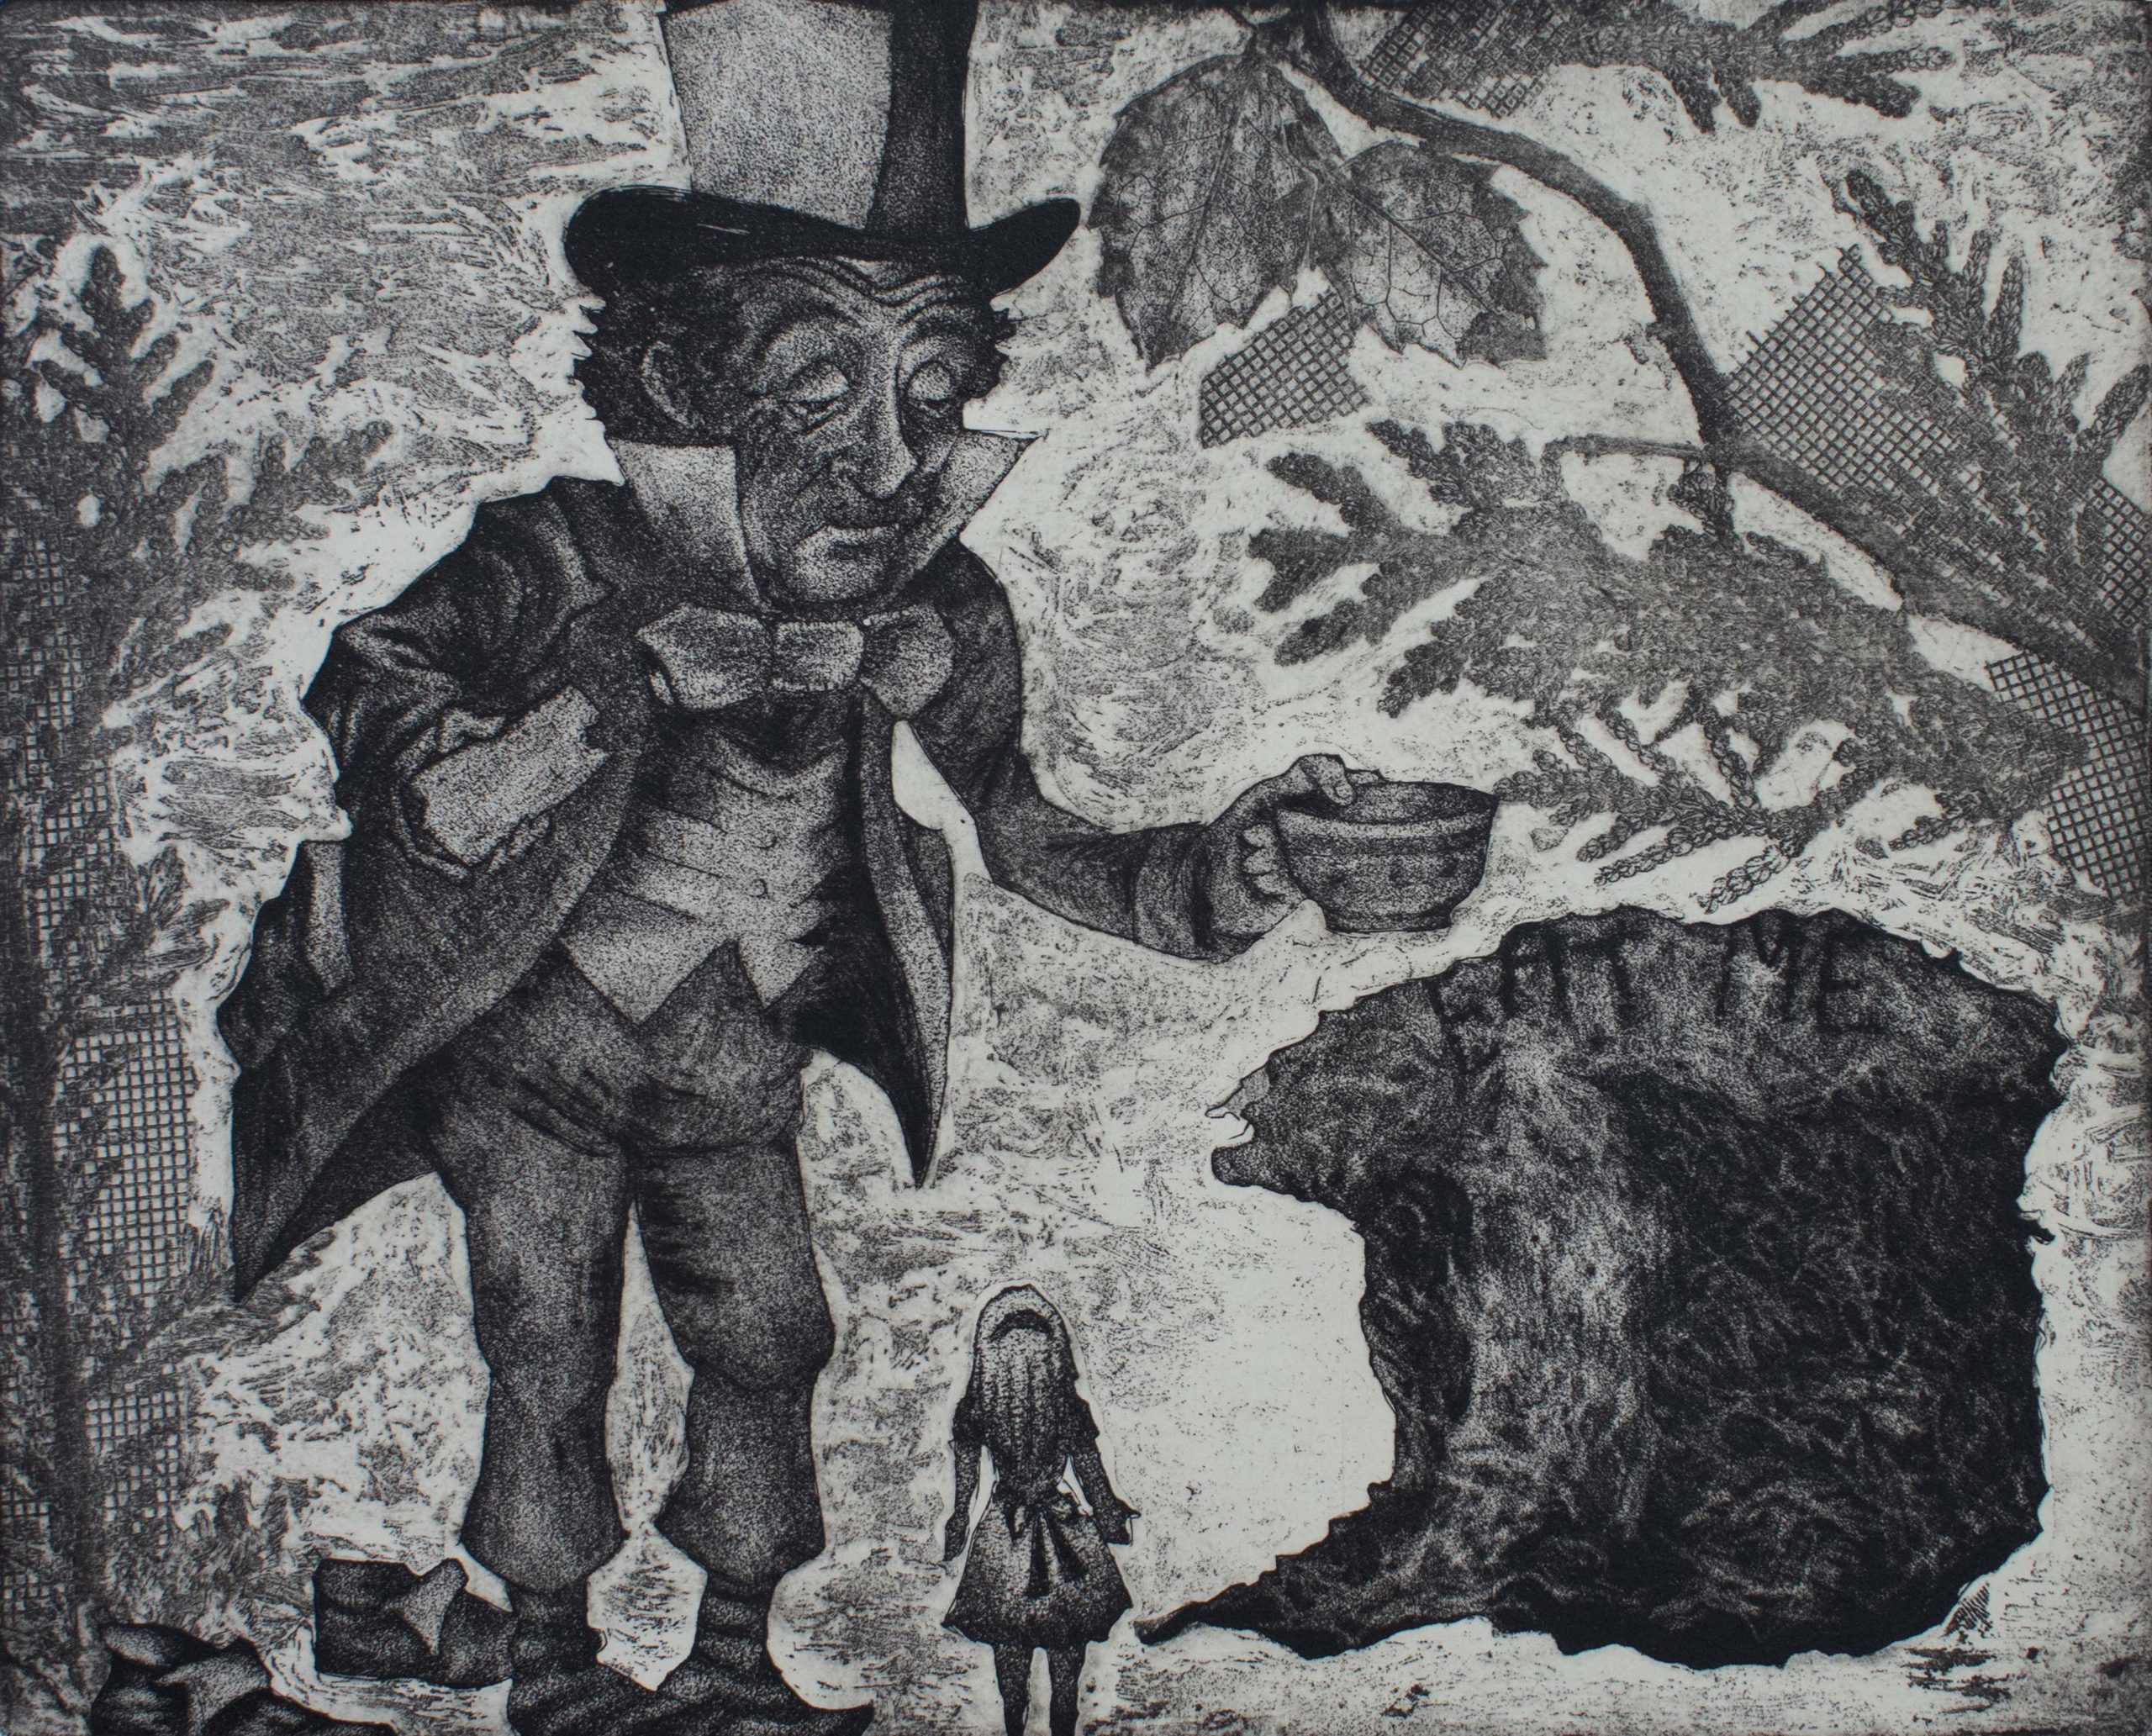 Eat me - 2018 - Soft Ground, Etching, Aquatint on paper - 9x11 inch